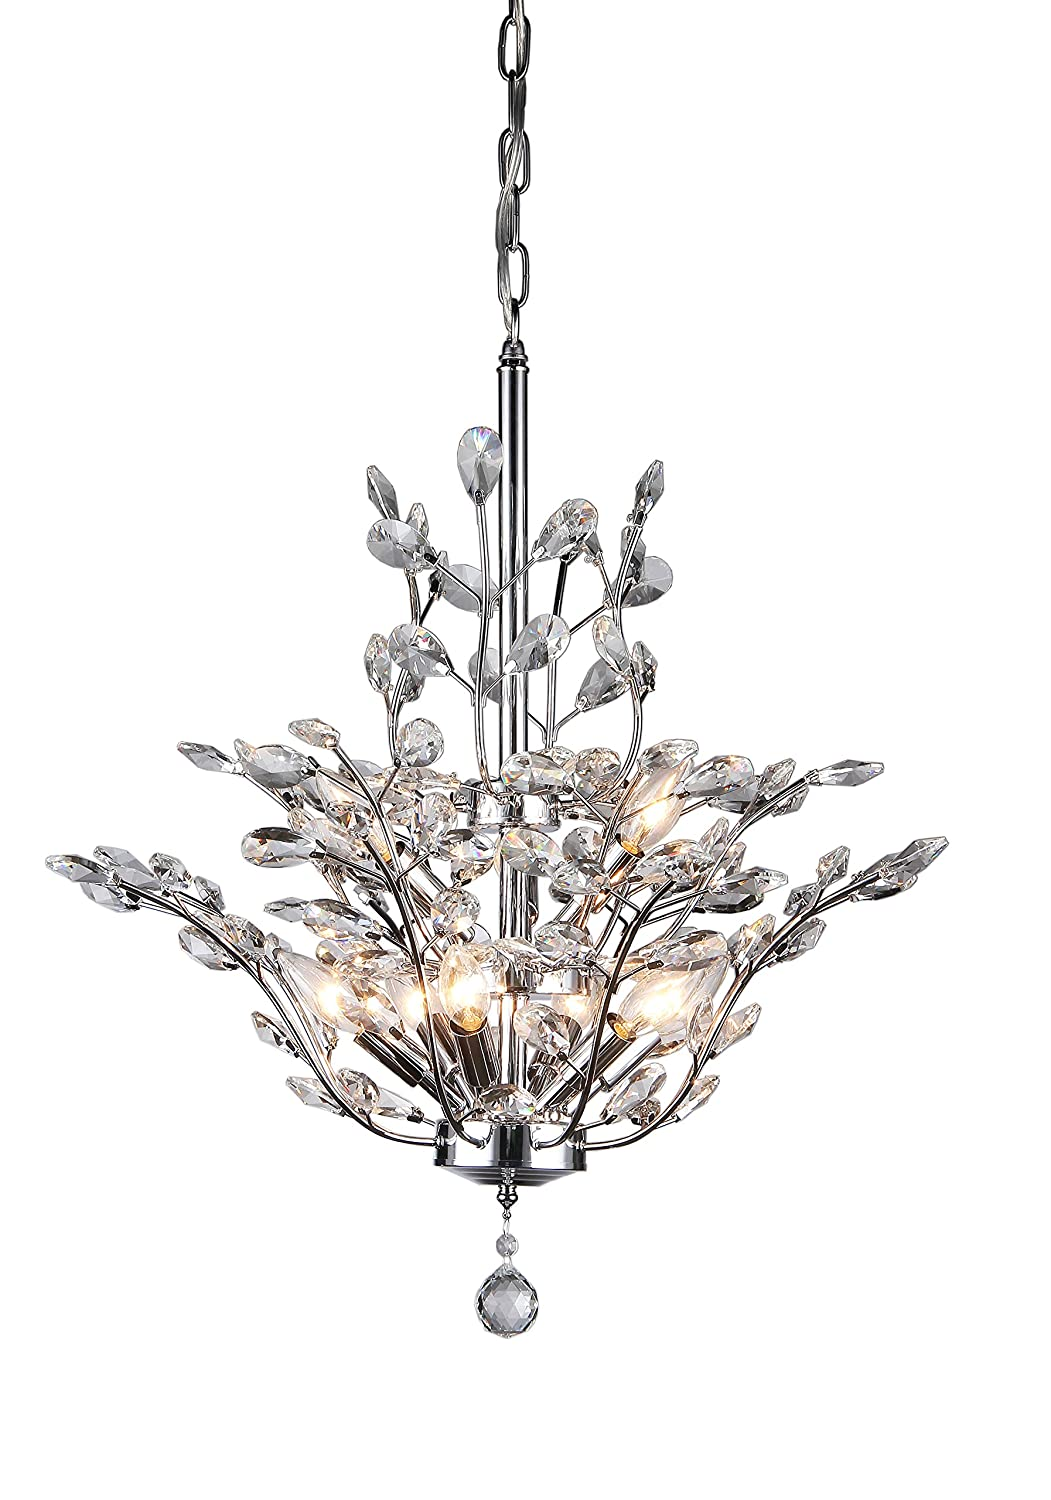 Whse Of Tiffany RLB Anastasia Leaf Chandelier Amazoncom - Chandelier leaves crystals